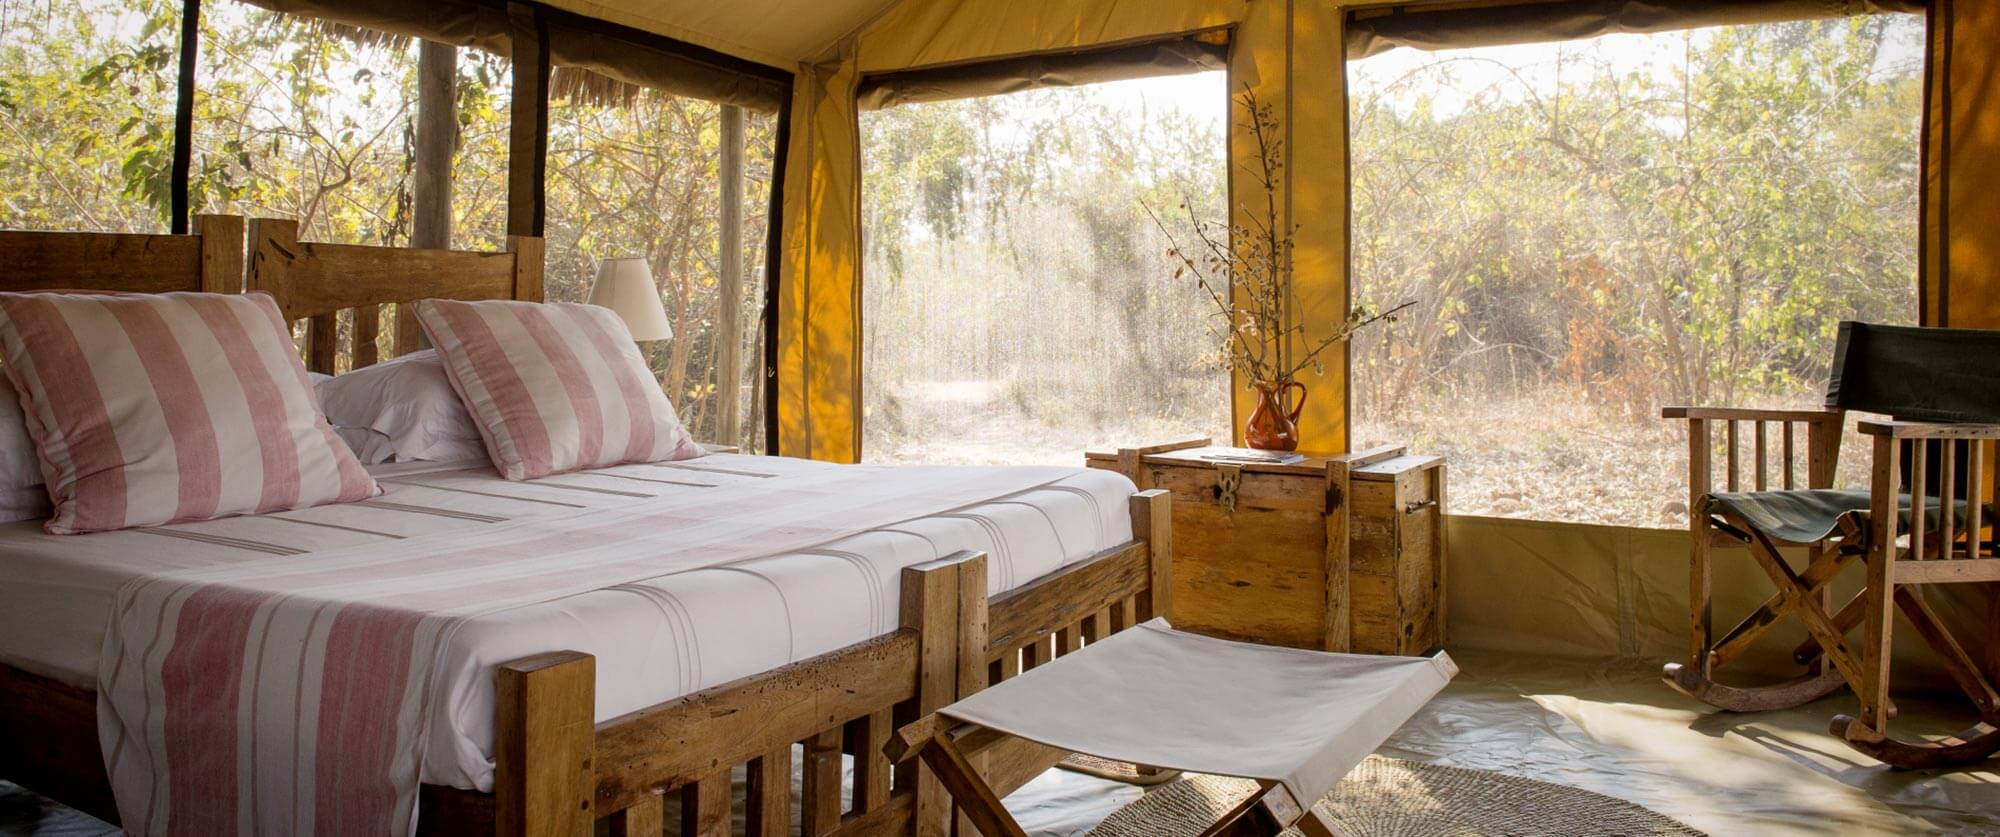 Tent at Kigelia Ruaha - Ruaha National Park Safaris - Remote Tanzania Safari Adventure